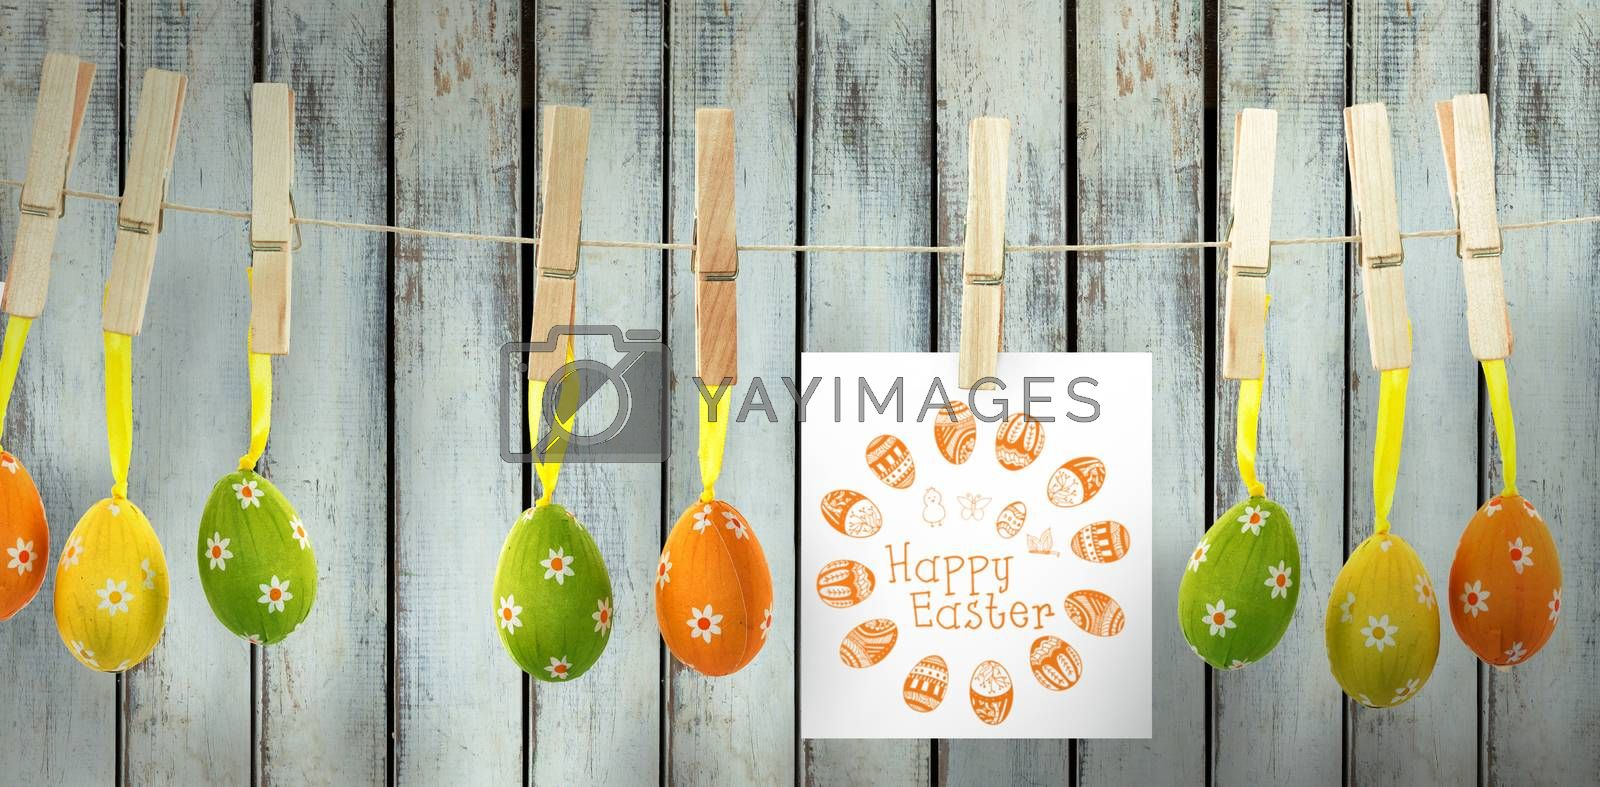 Happy easter logo against wood background